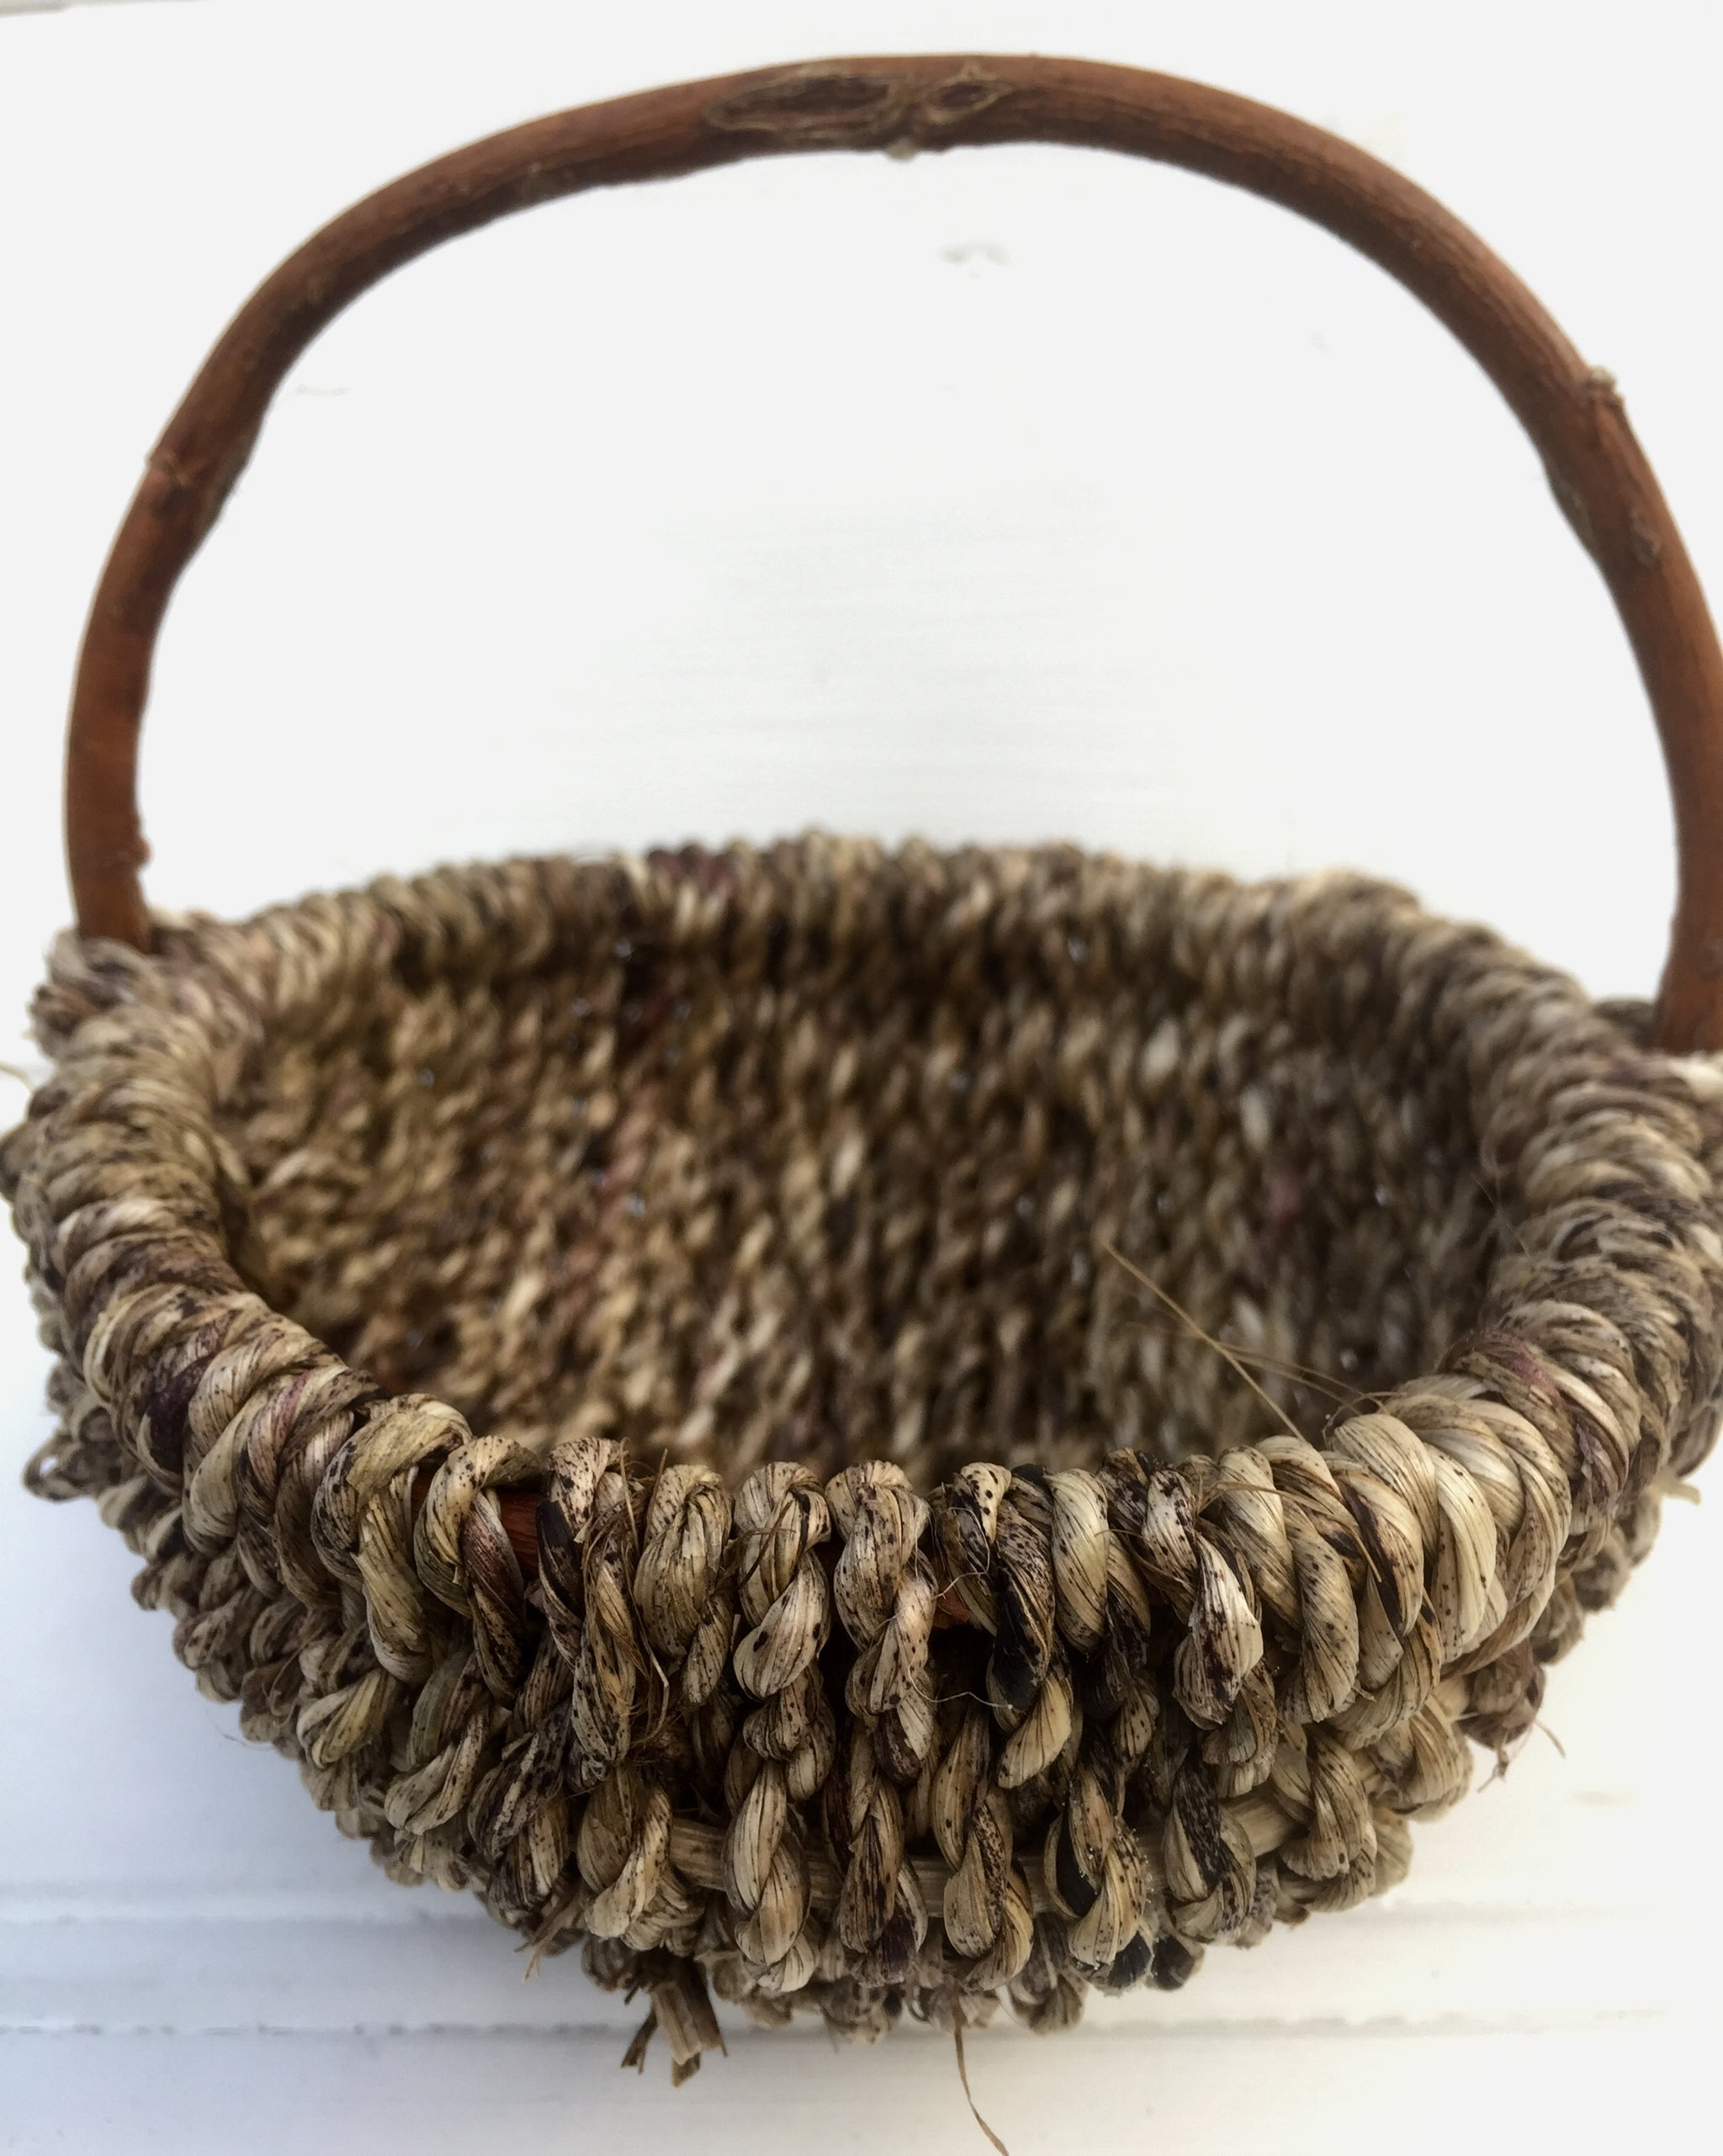 *Ribbed basketry with Jillian Culey 8th - 9th Feb 2020 -2 days